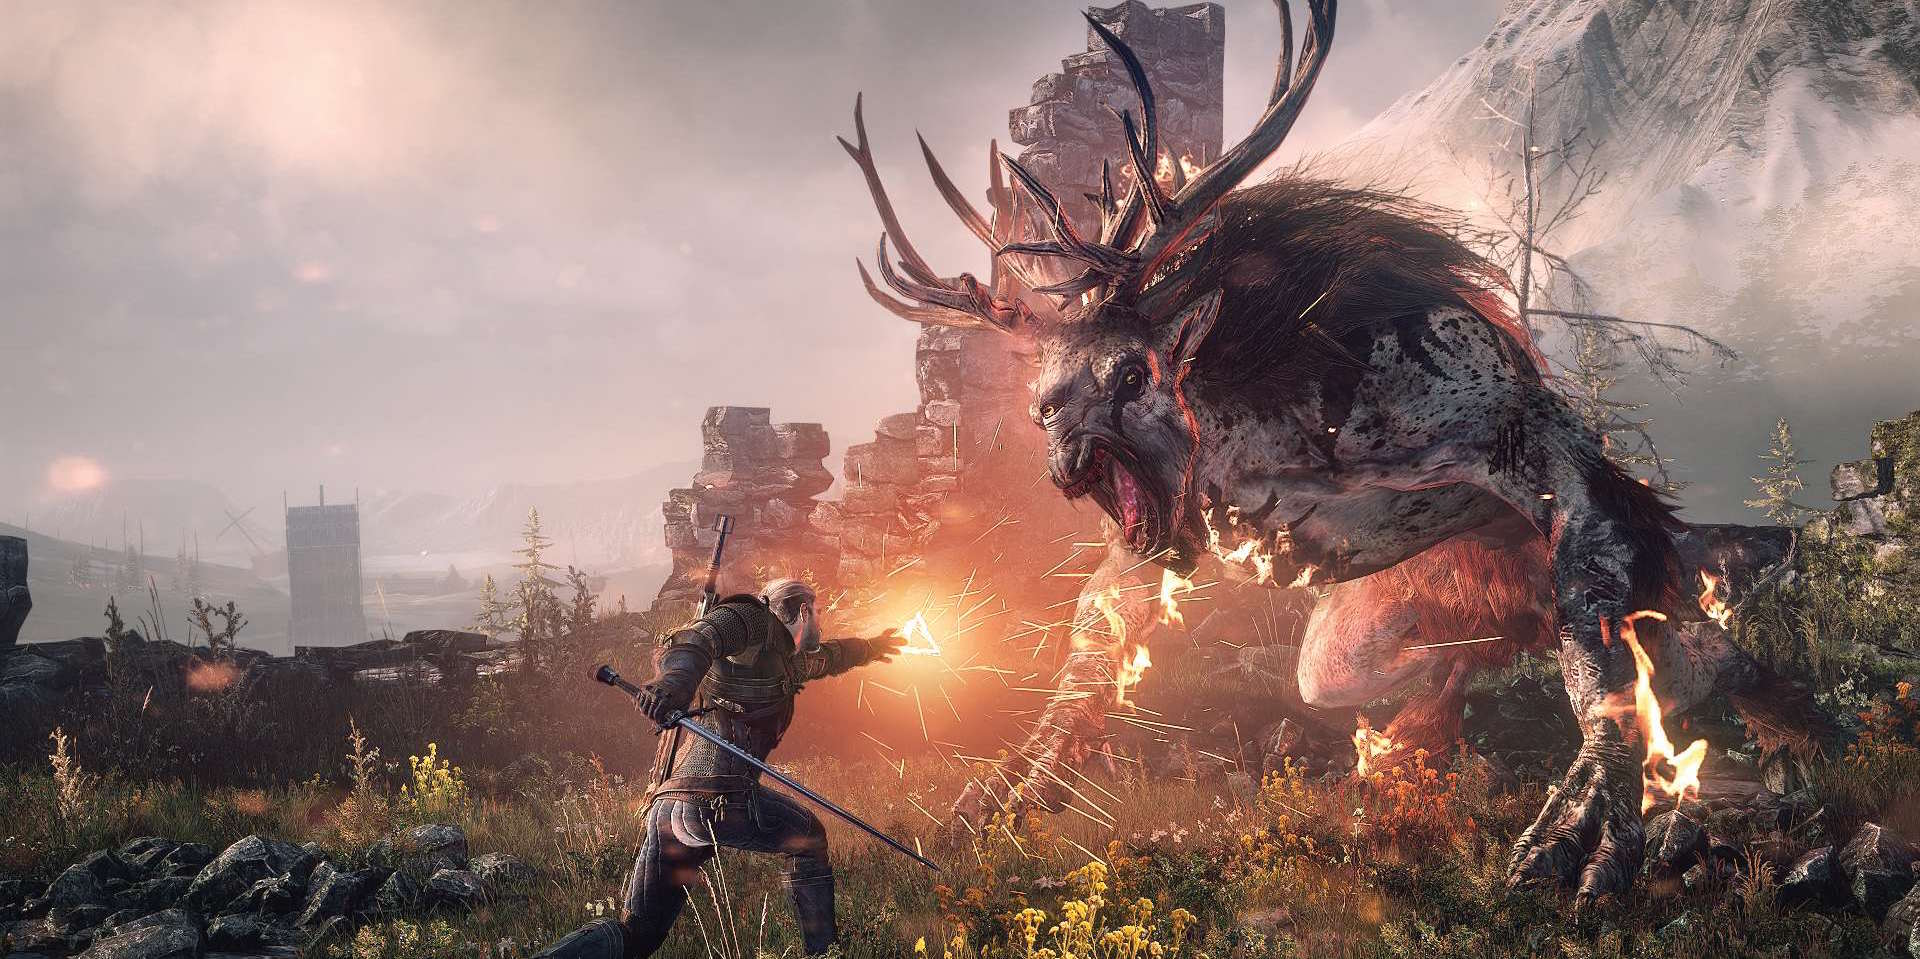 Today's Best Game Deals: Witcher 3 Complete $15, Pokemon Let's Go $48, more